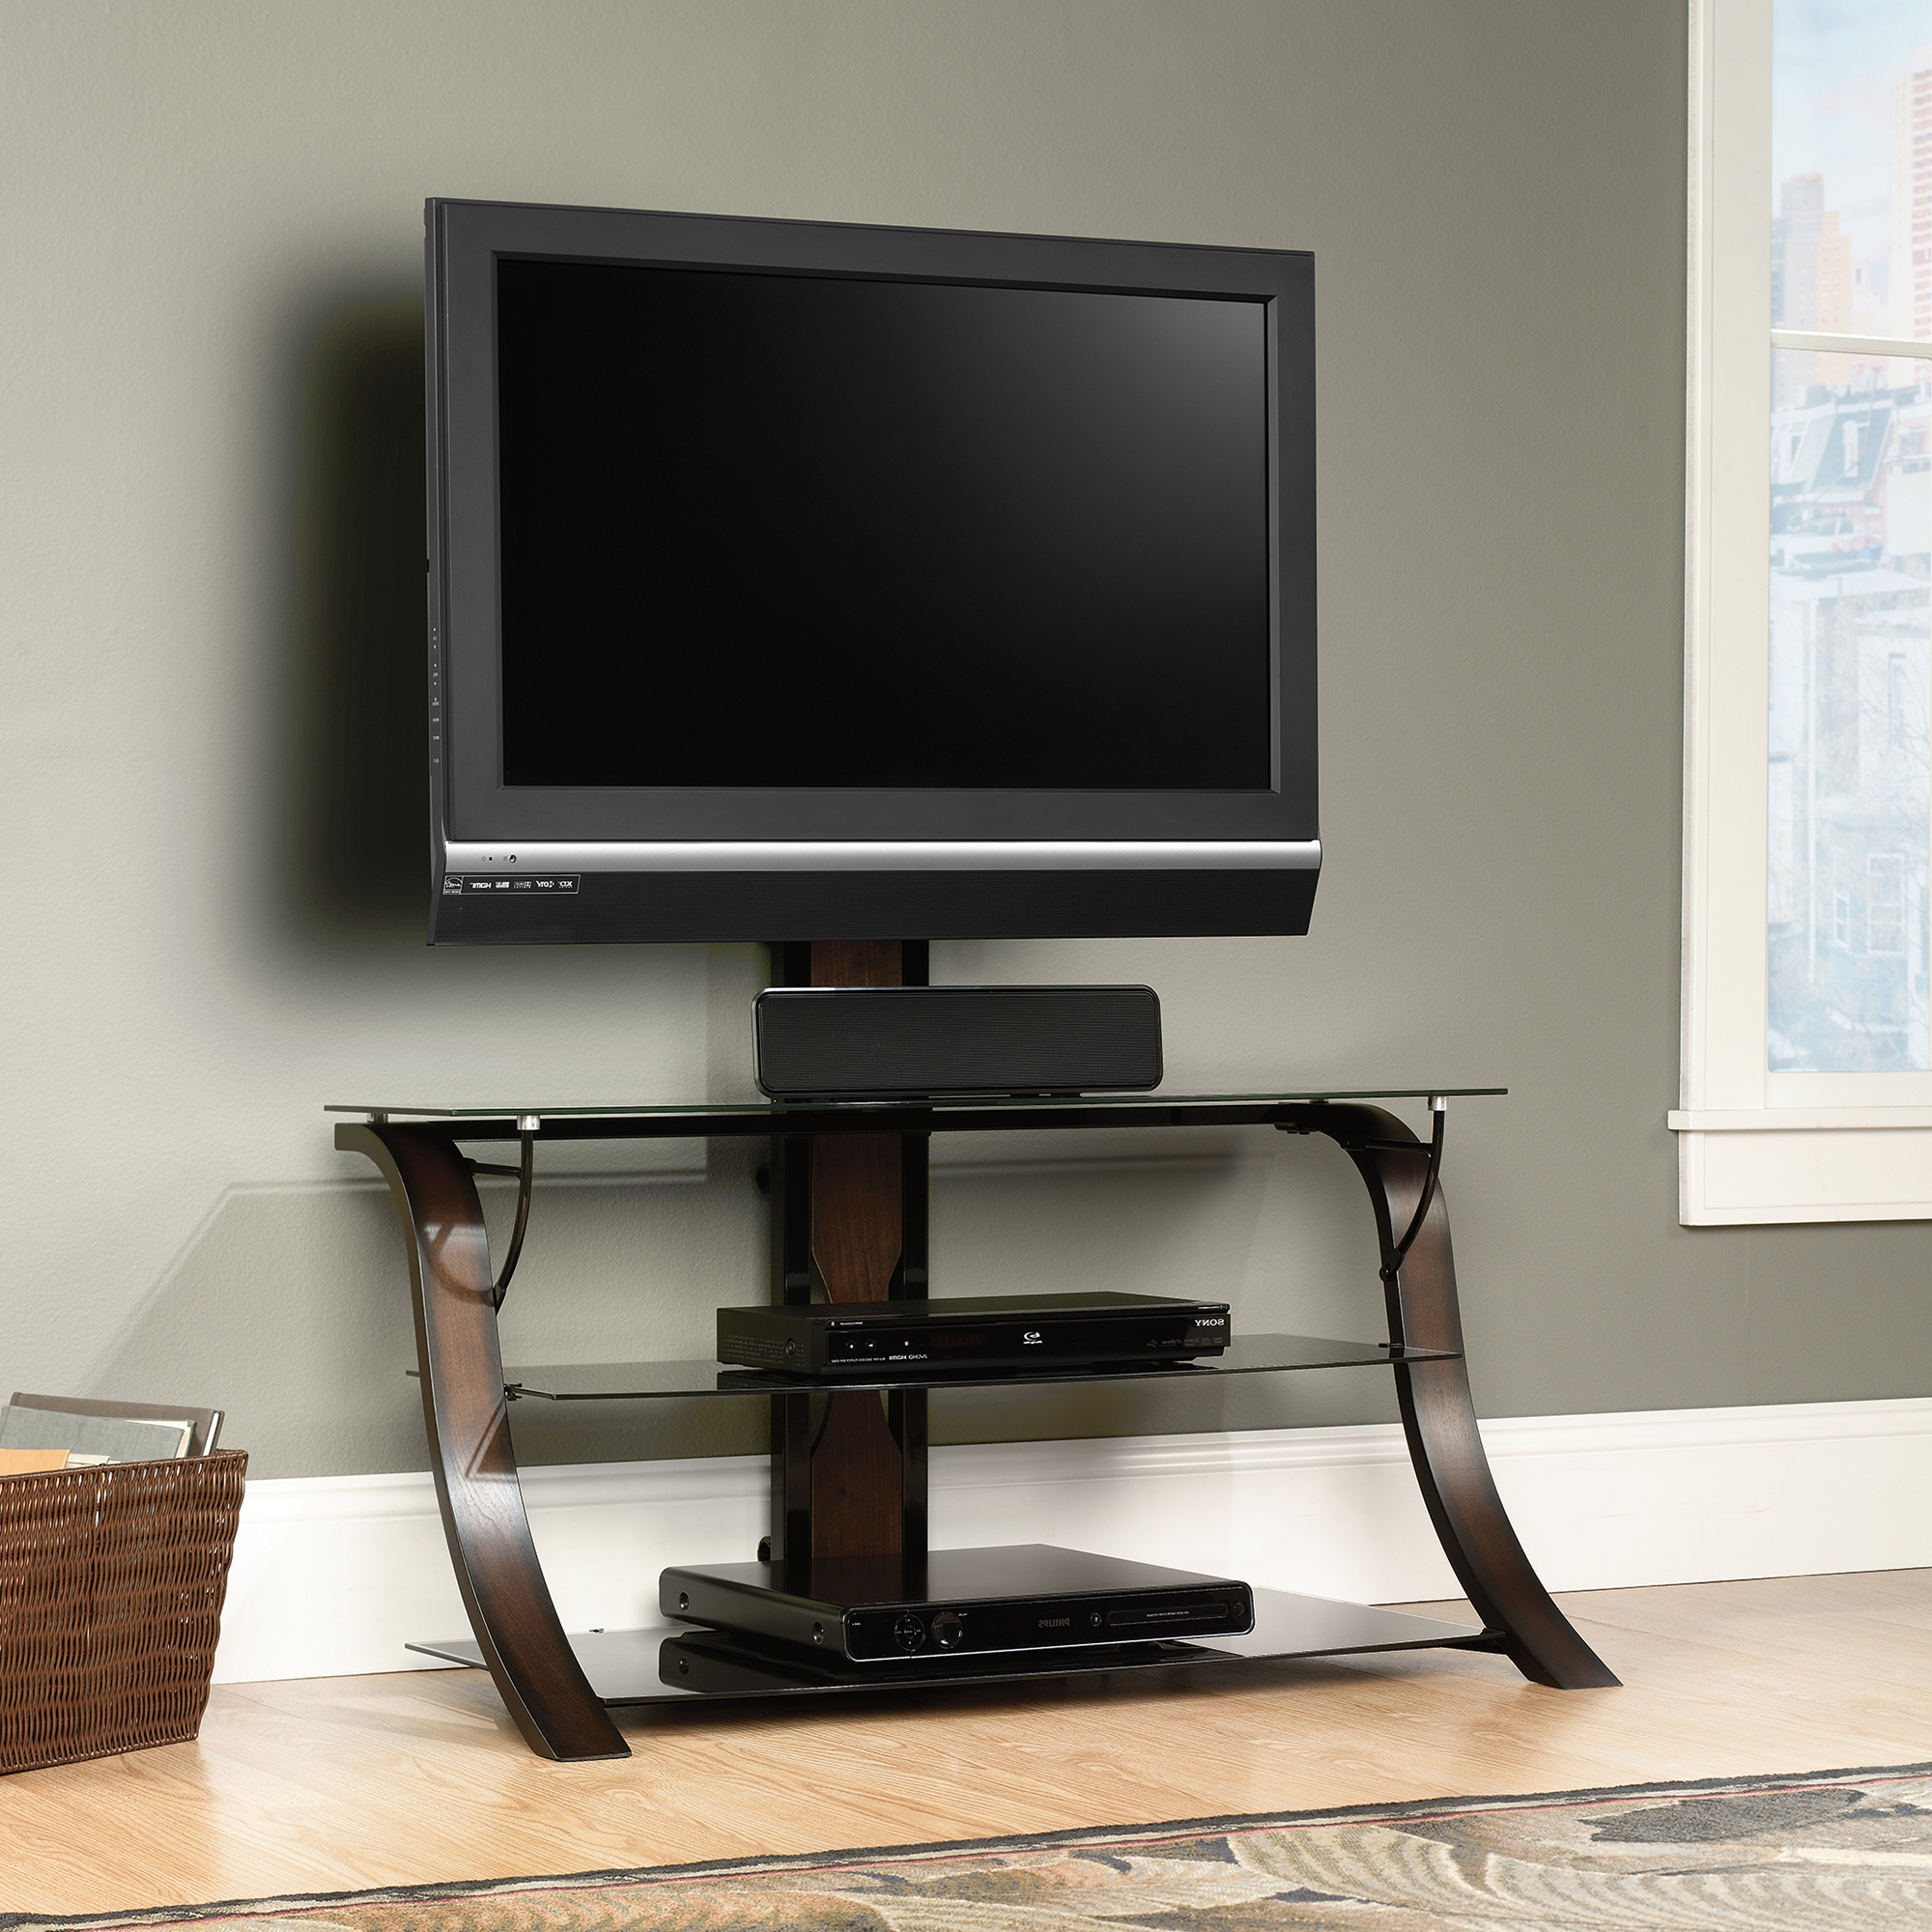 Sauder Select Veer Mounted Tv Stand Cherry Finish (413906) – Sauder Within Well Known 32 Inch Tv Stands (View 6 of 20)